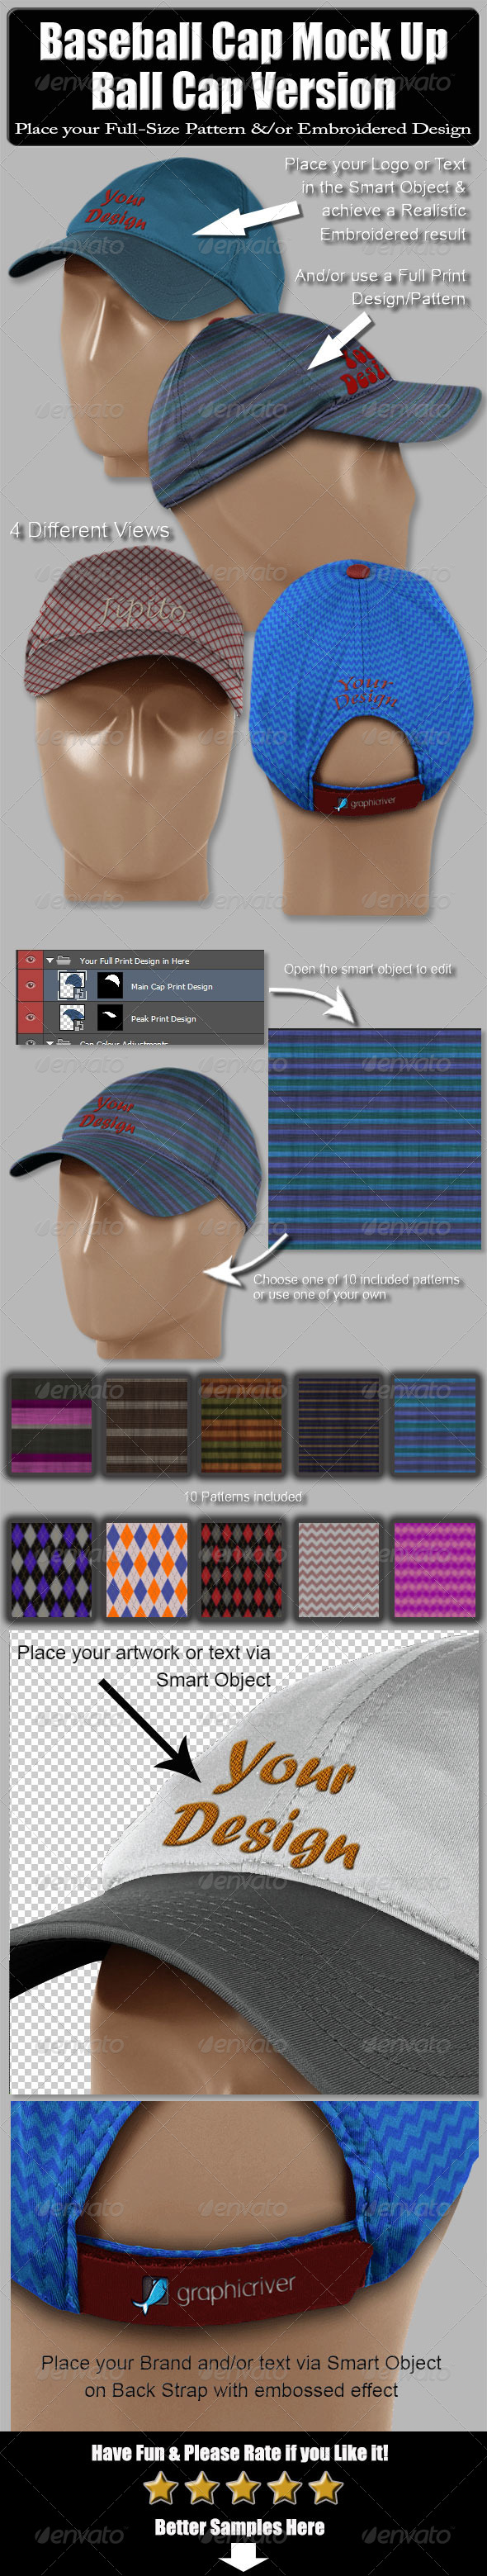 Baseball Cap Mock Up-Ball Cap Version - Miscellaneous Apparel